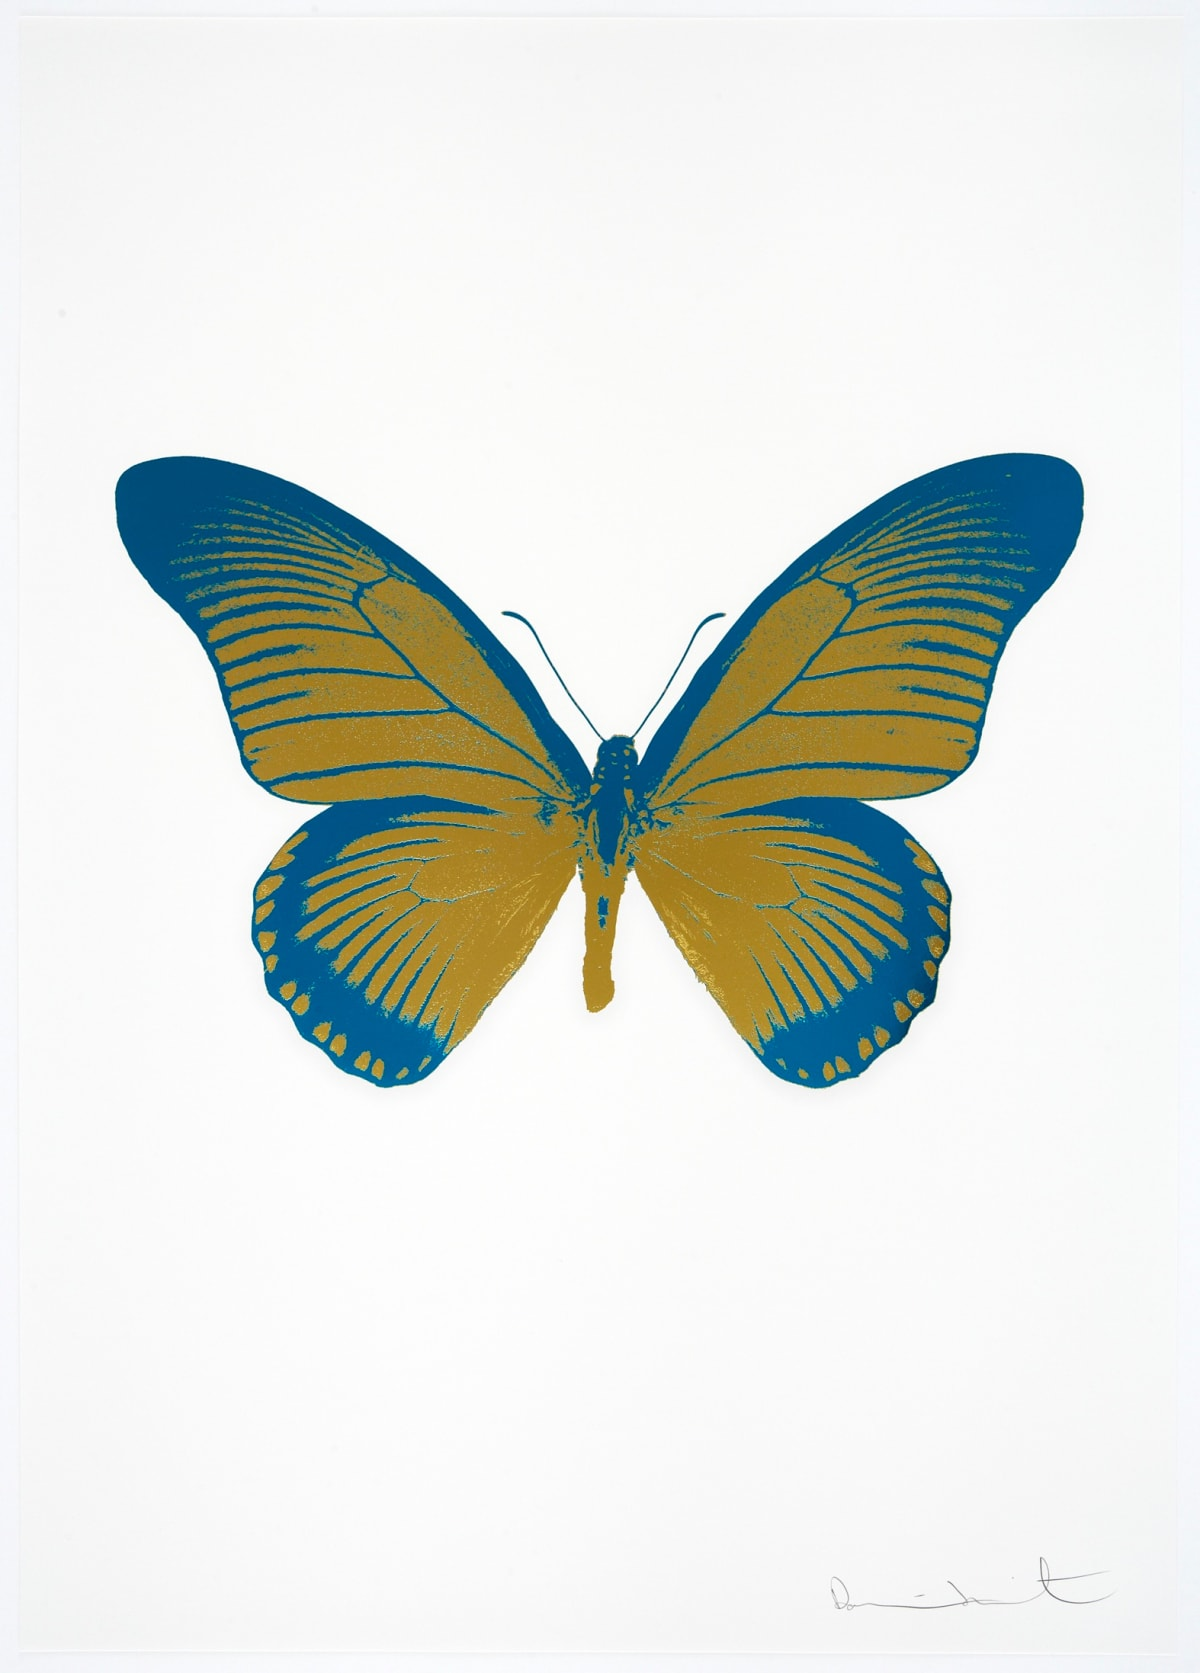 Damien Hirst The Souls IV - Oriental Gold/Turquoise, 2010 2 colour foil block on 300gsm Arches 88 archival paper. Signed and numbered. Published by Paul Stolper and Other Criteria 72 x 51cm OC7993 / 1418-16 Edition of 15